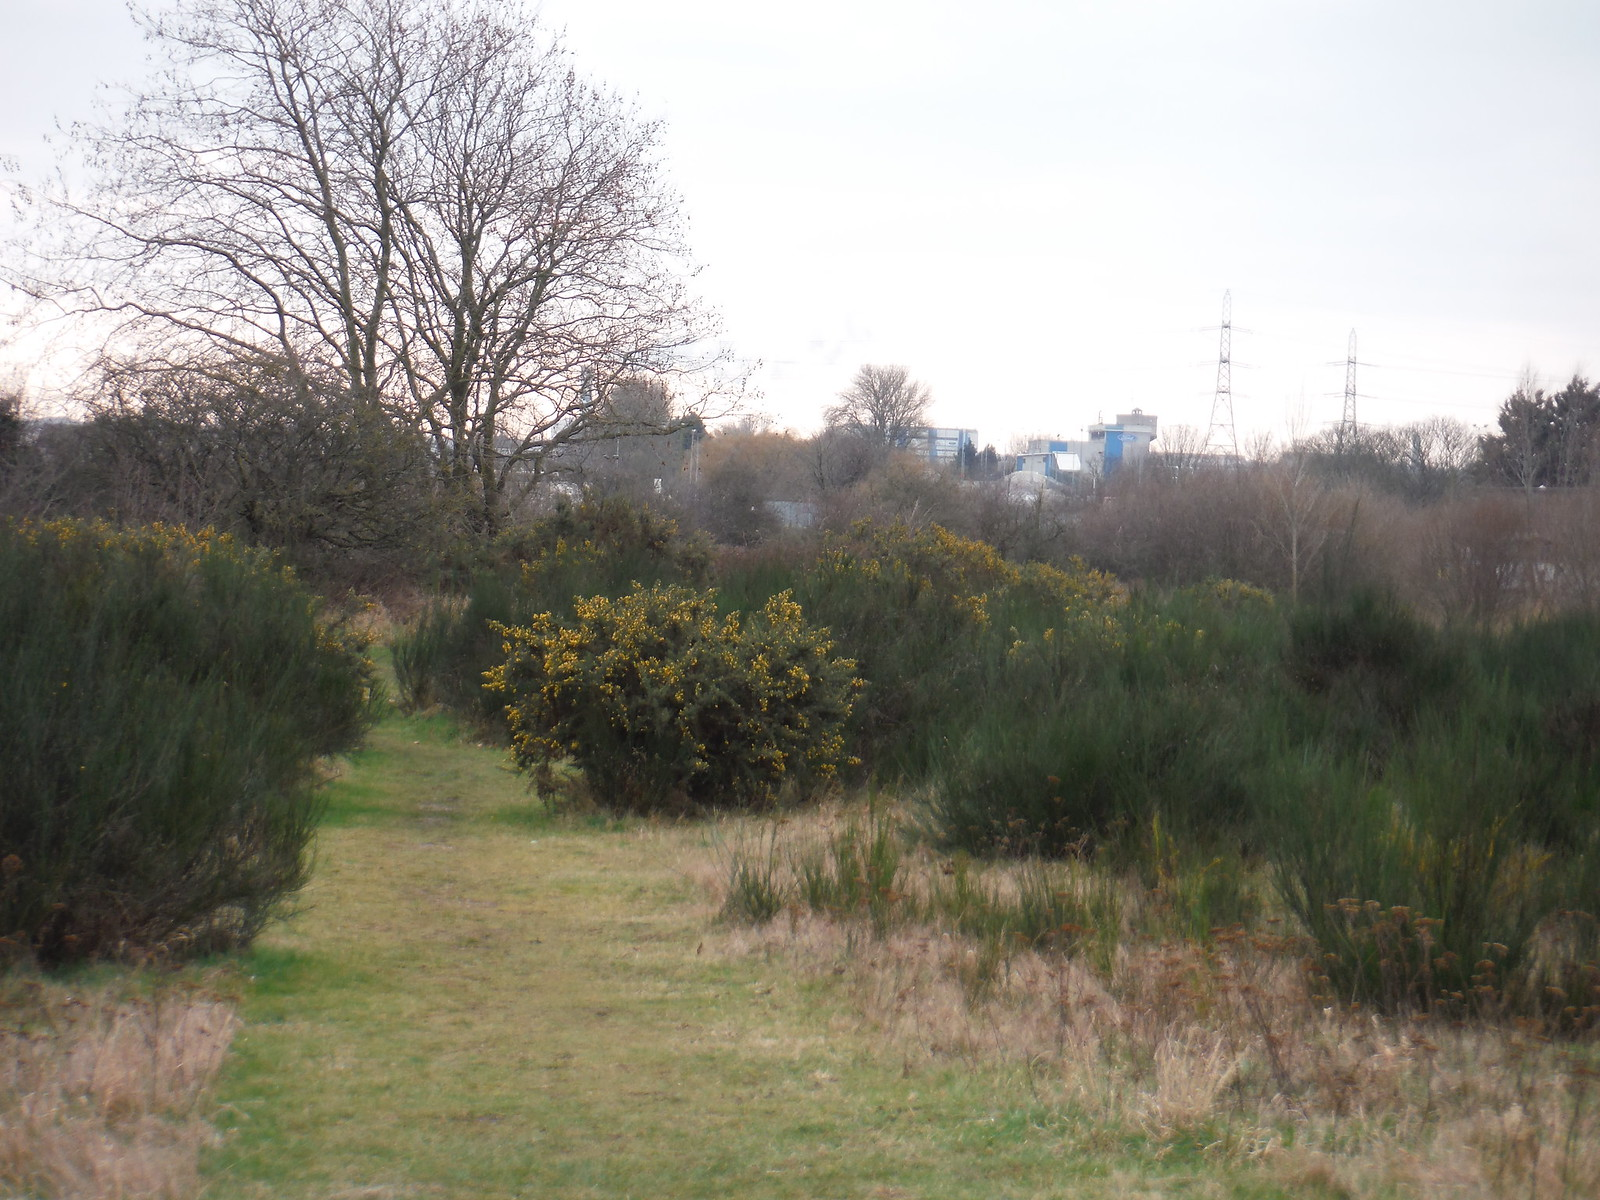 Grassy Path through Gorse Bushes, Beam Parklands SWC Short Walk 33 - Dagenham Parks, Rivers and Ponds